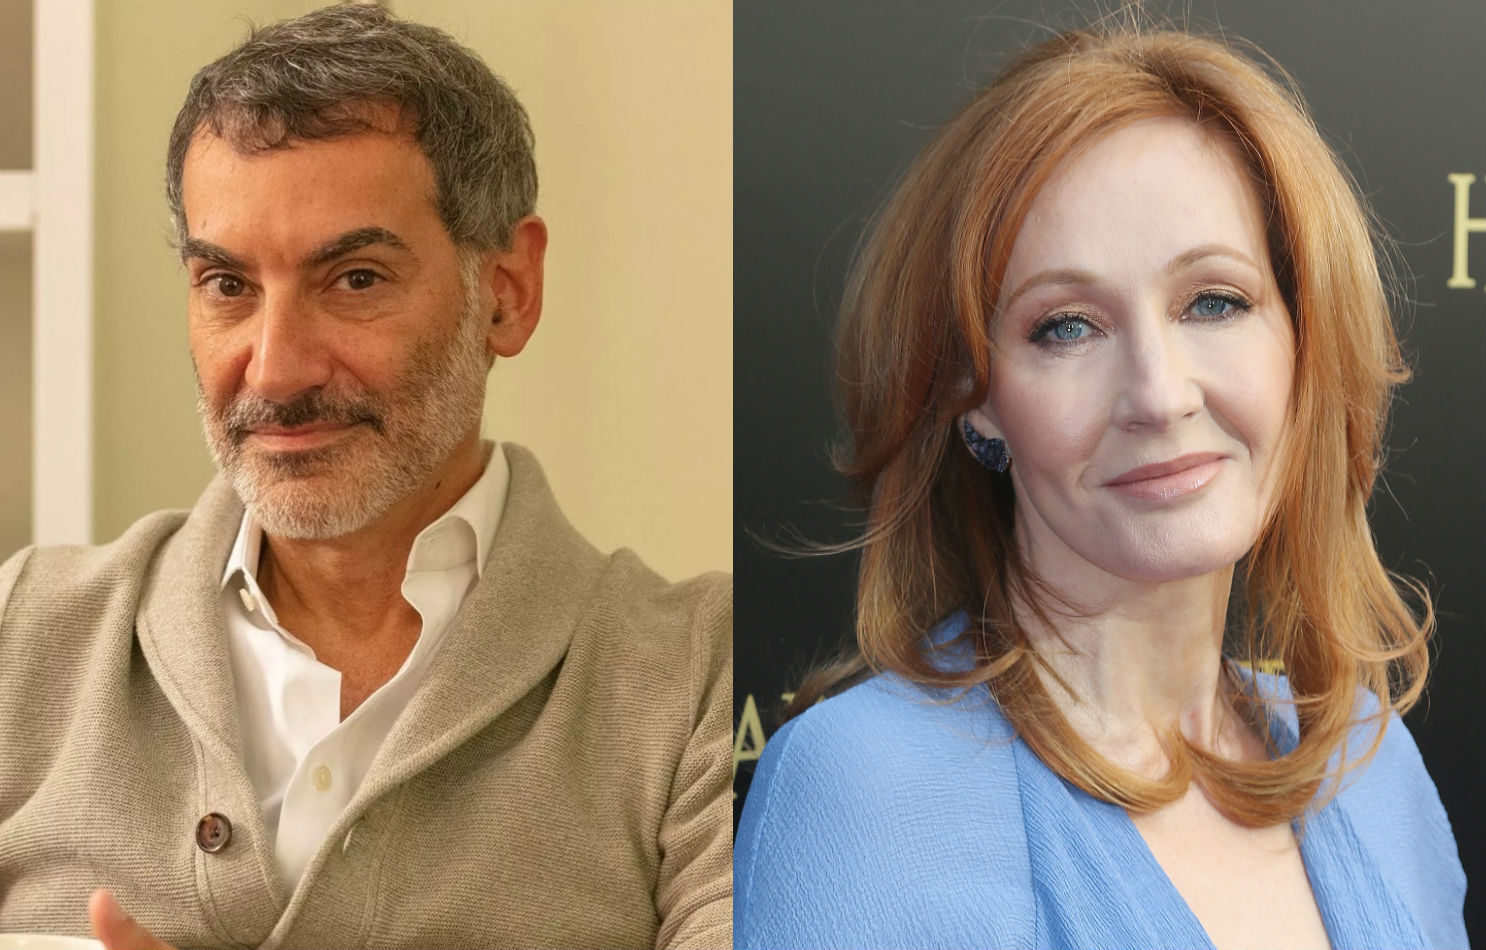 Sex researcher Dr James Cantor and JK Rowling